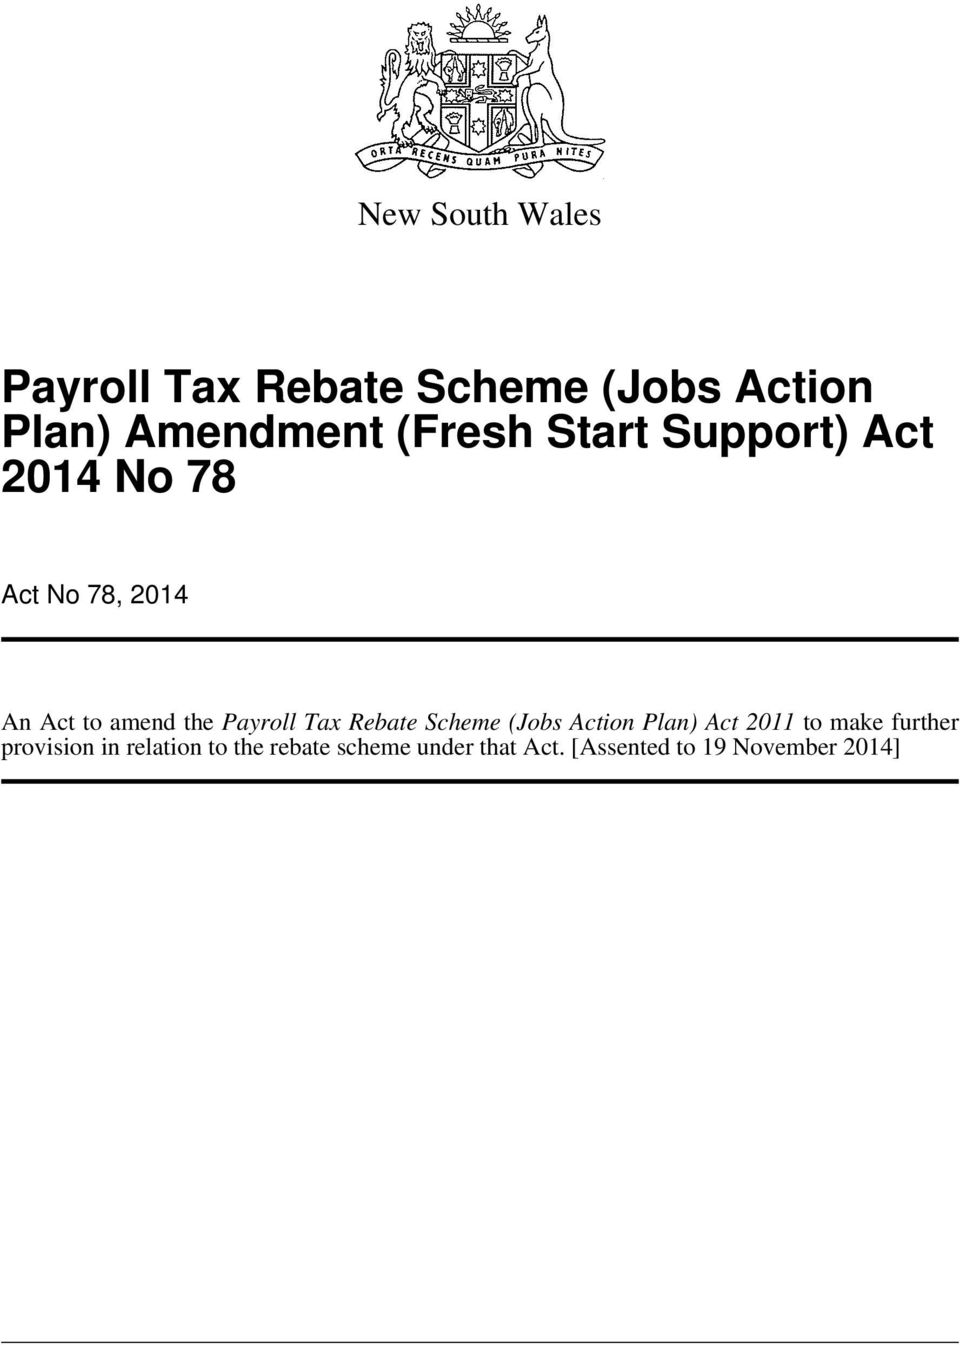 Payroll Tax Rebate Scheme (Jobs Action Plan) Act 2011 to make further